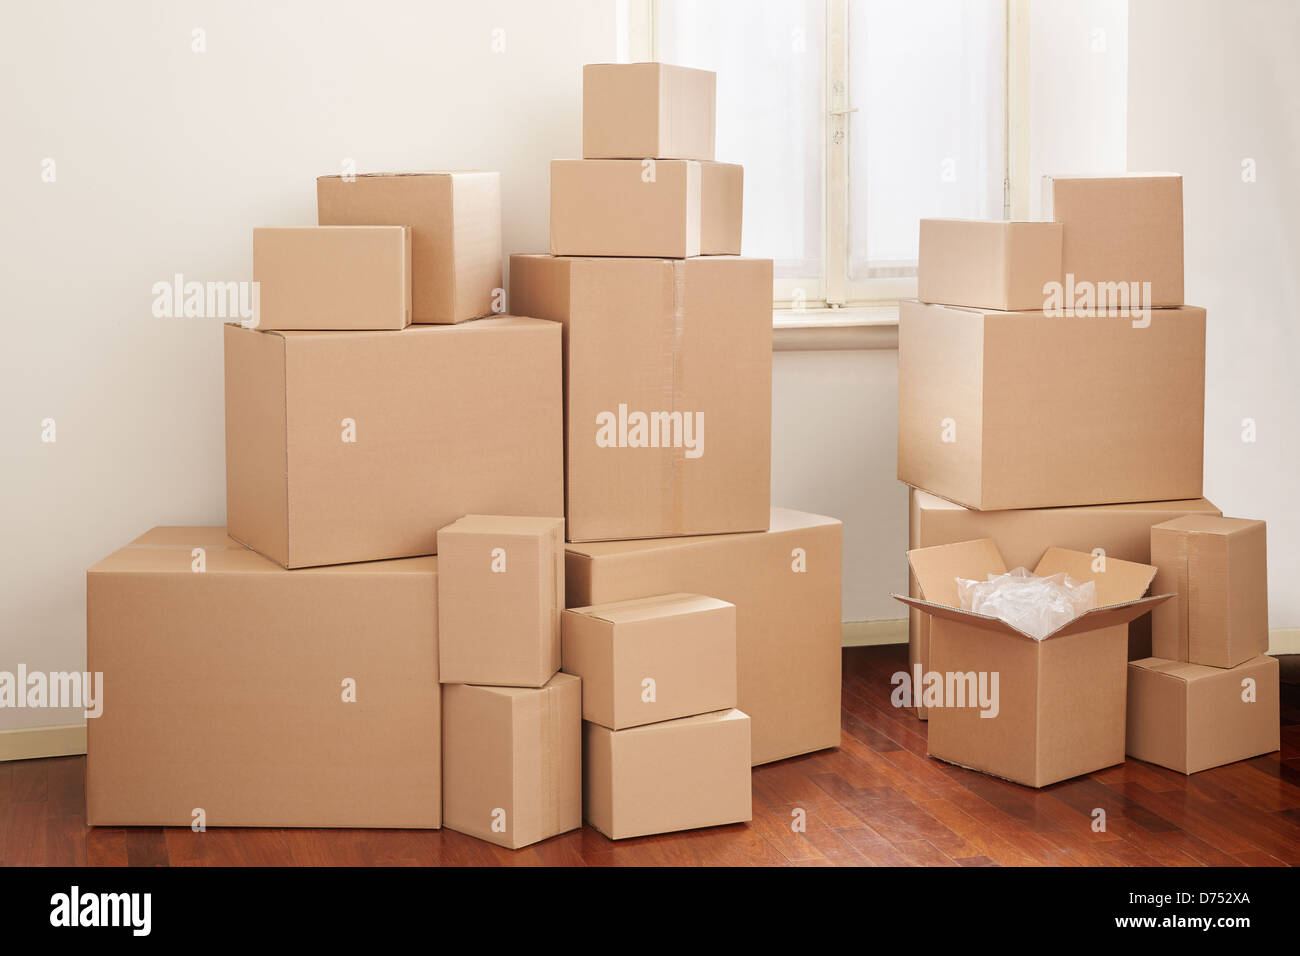 Cardboard boxes in apartment, moving day - Stock Image